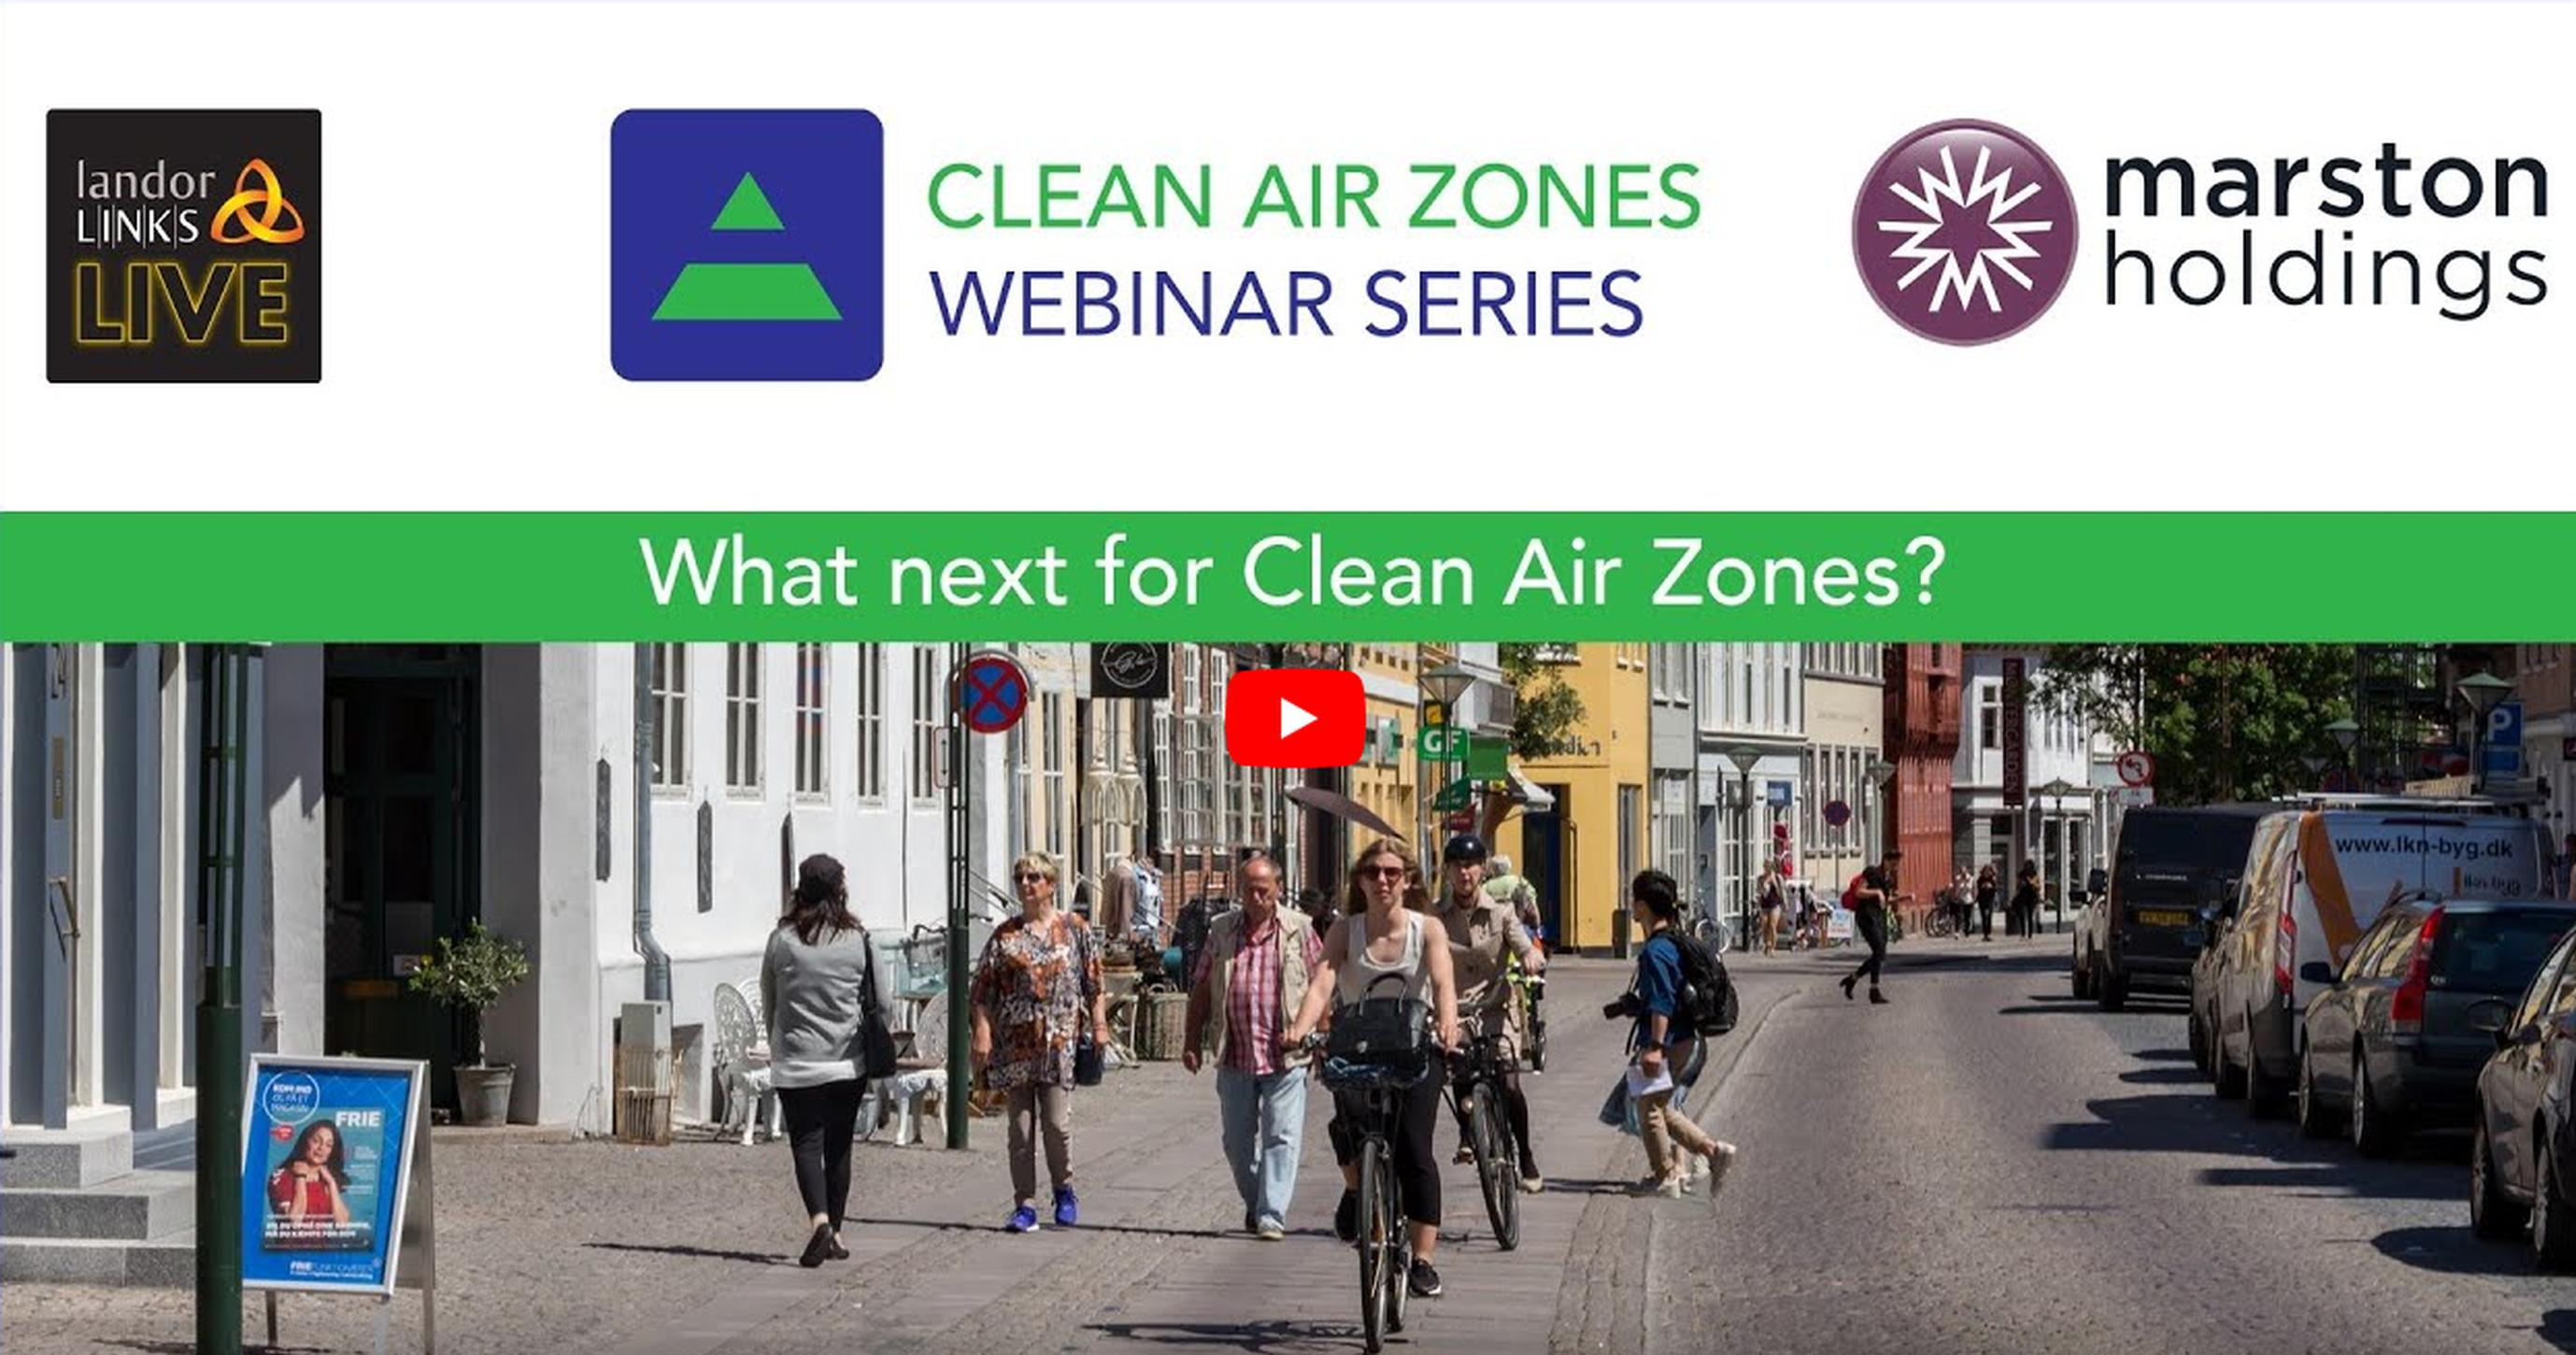 What`s Next for Clean Air Zones? is available on the Landor LINKS YouTube channel